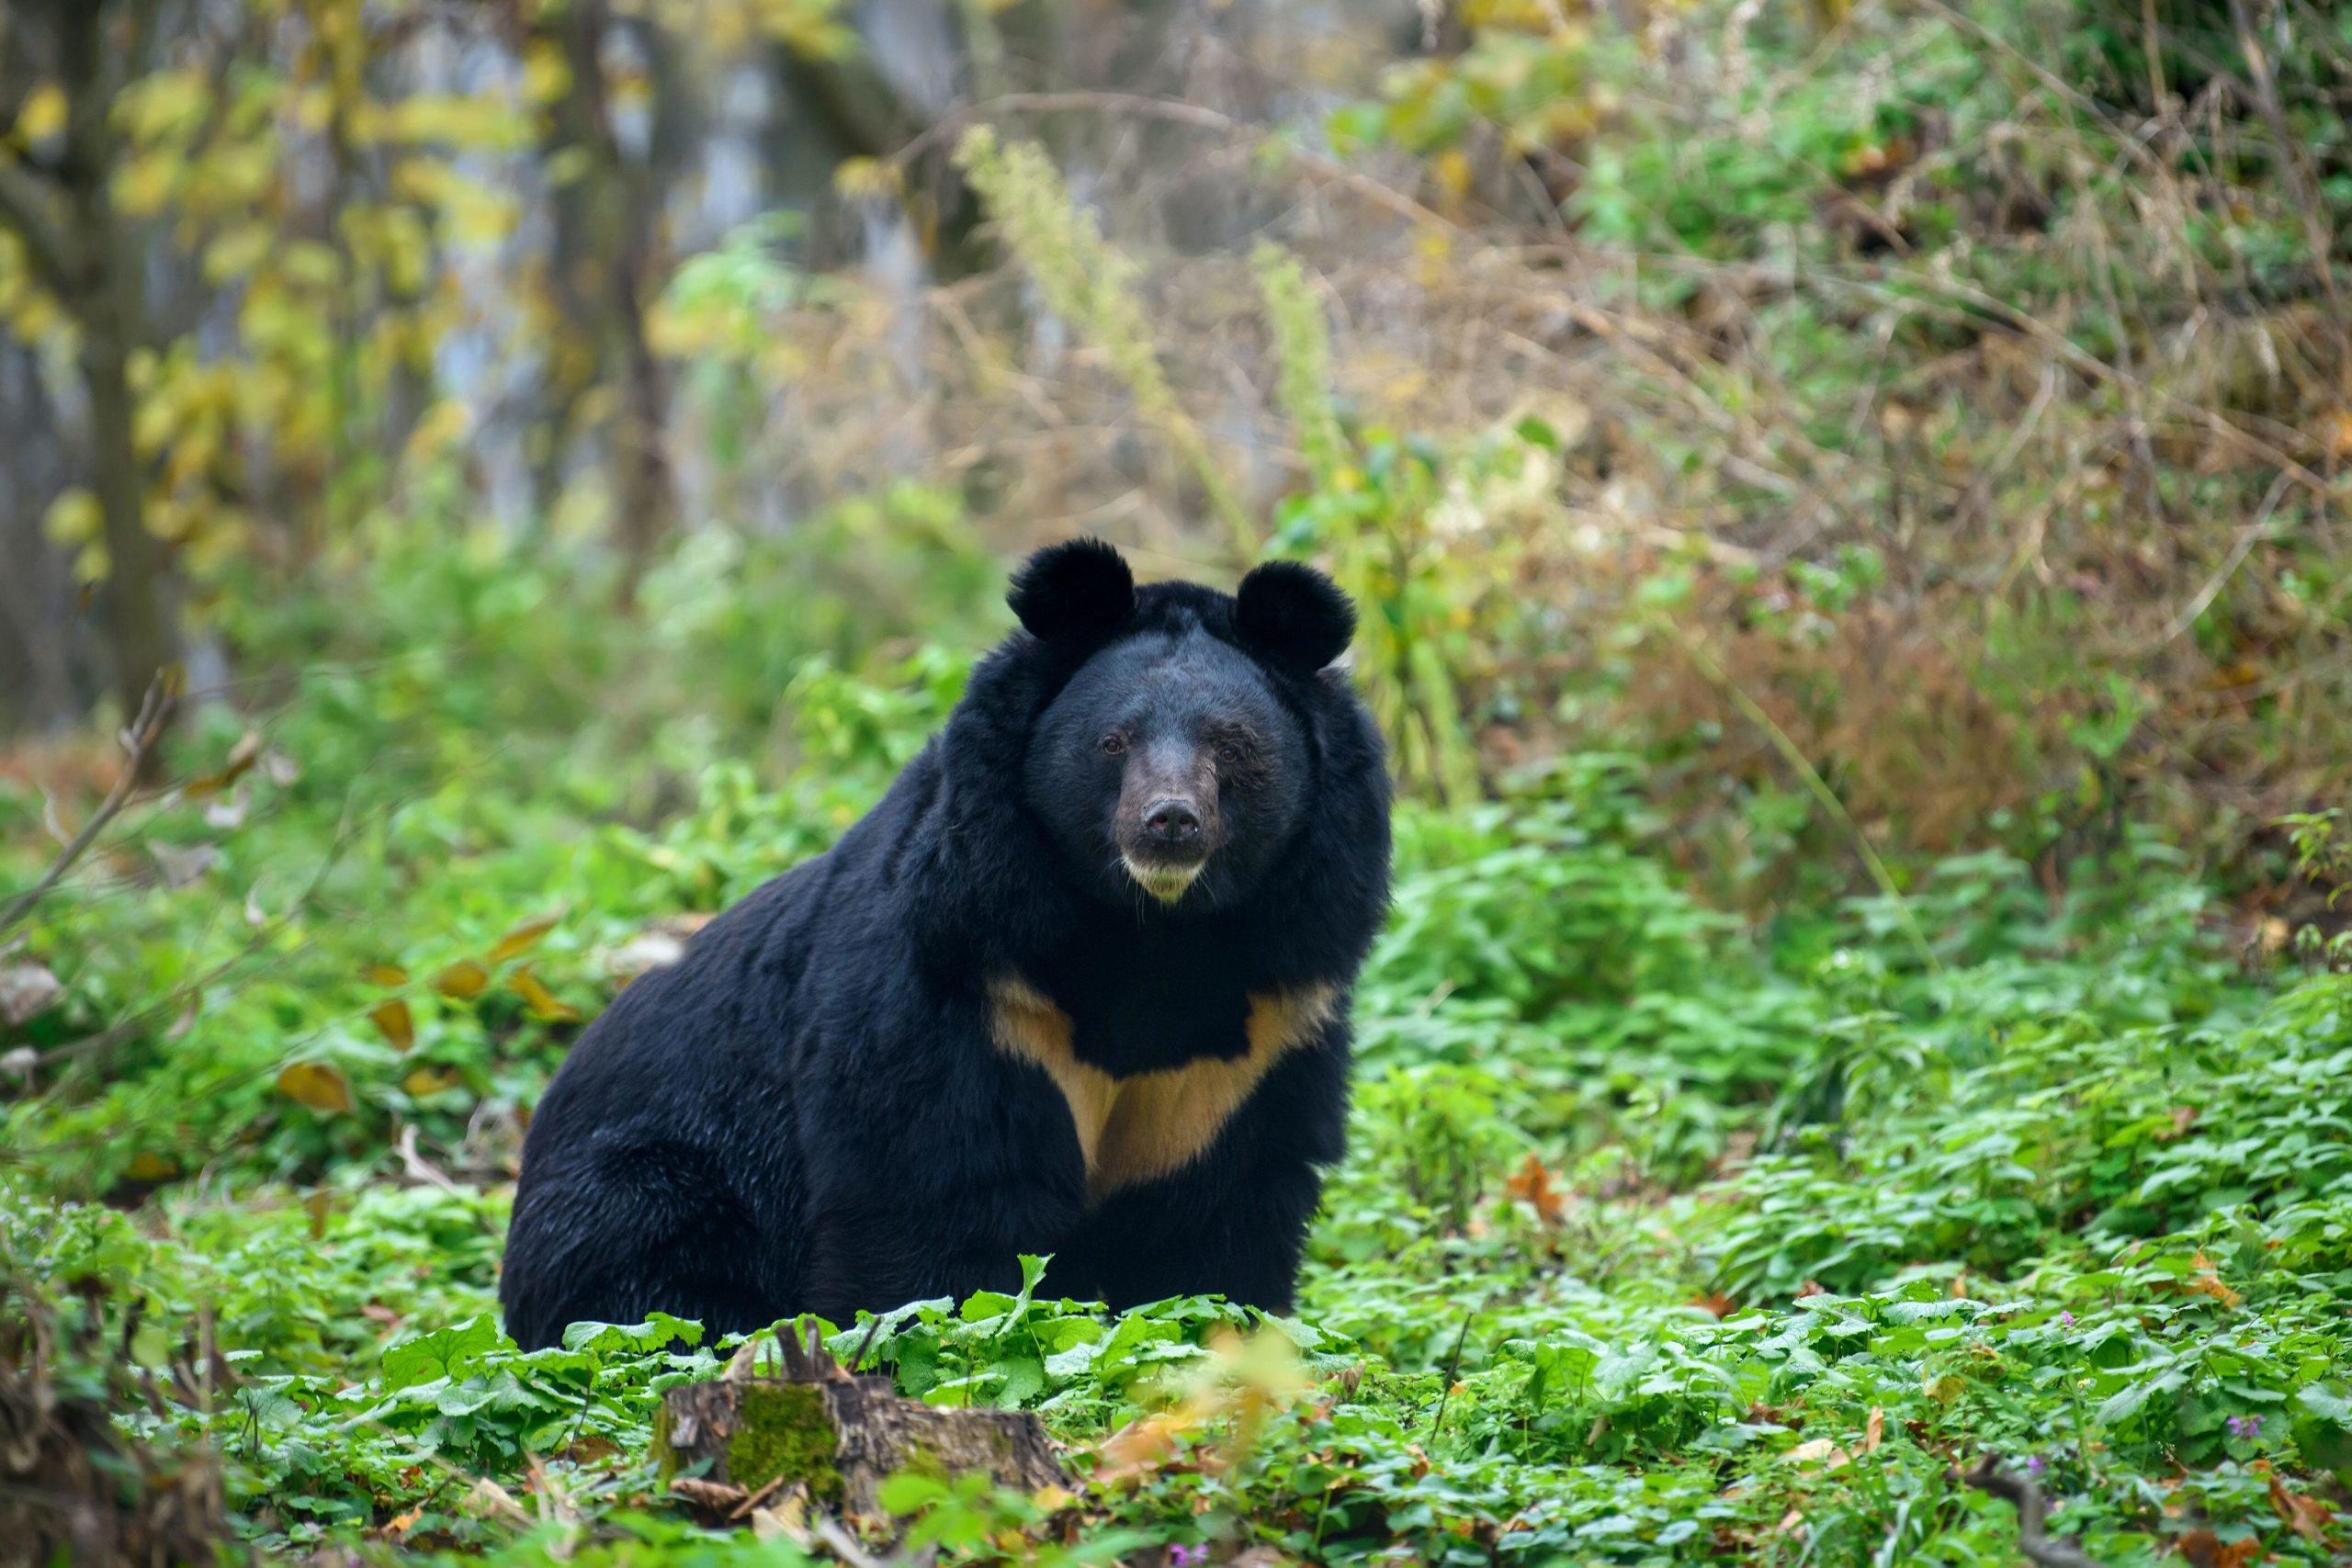 The Asiatic black bear is also known as the 'moon bear'. It depends on forest vegetation for food, making the species vulnerable as climate change alters the altitude at which trees grow. (Image: Volodymyr Burdiak / Alamy)